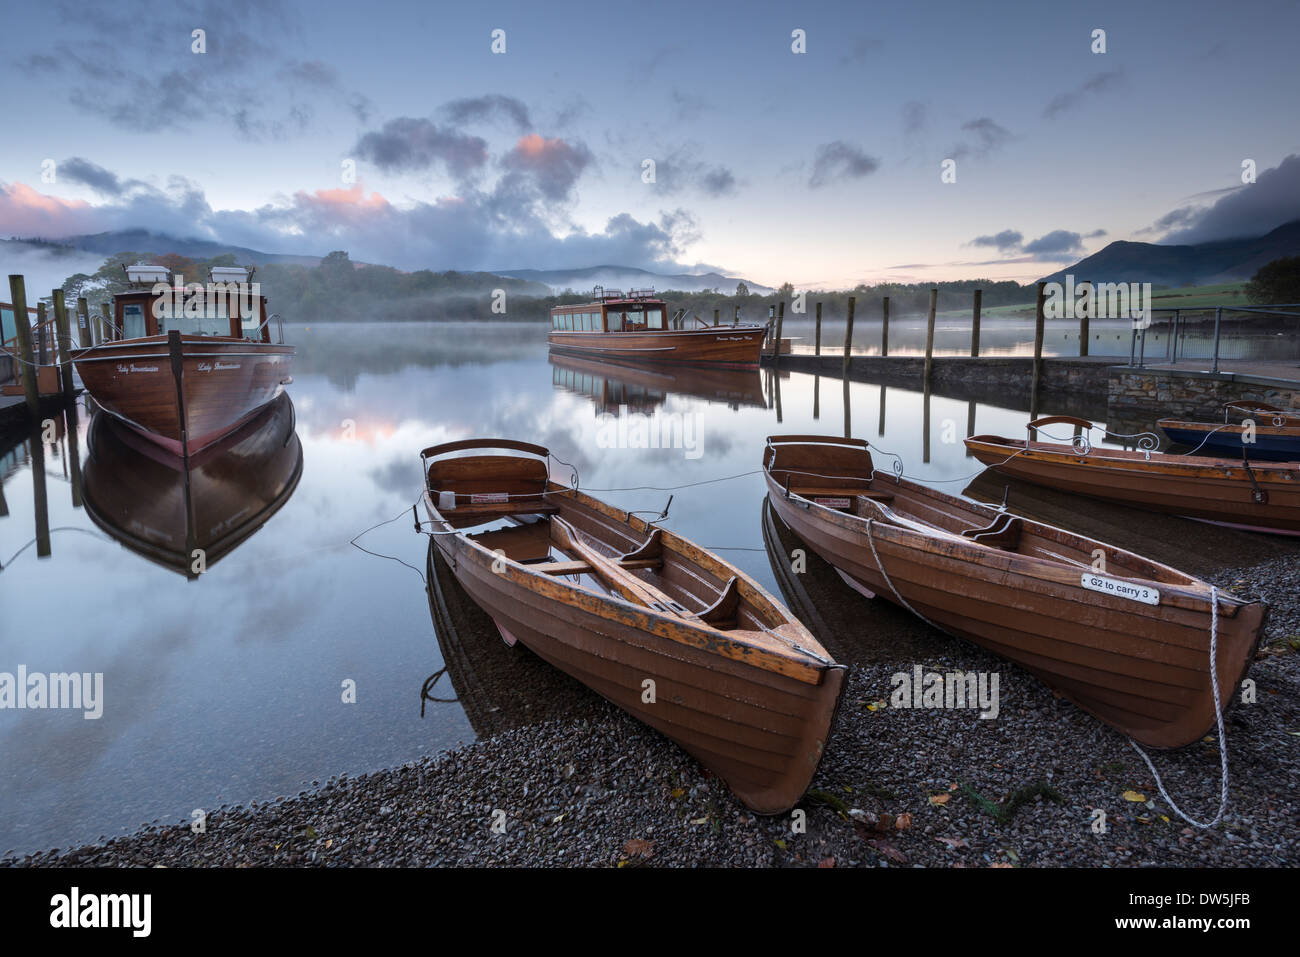 Boats moored on Derwent Water at dawn, Keswick, Lake District, Cumbria, England. Autumn (October) 2012. - Stock Image